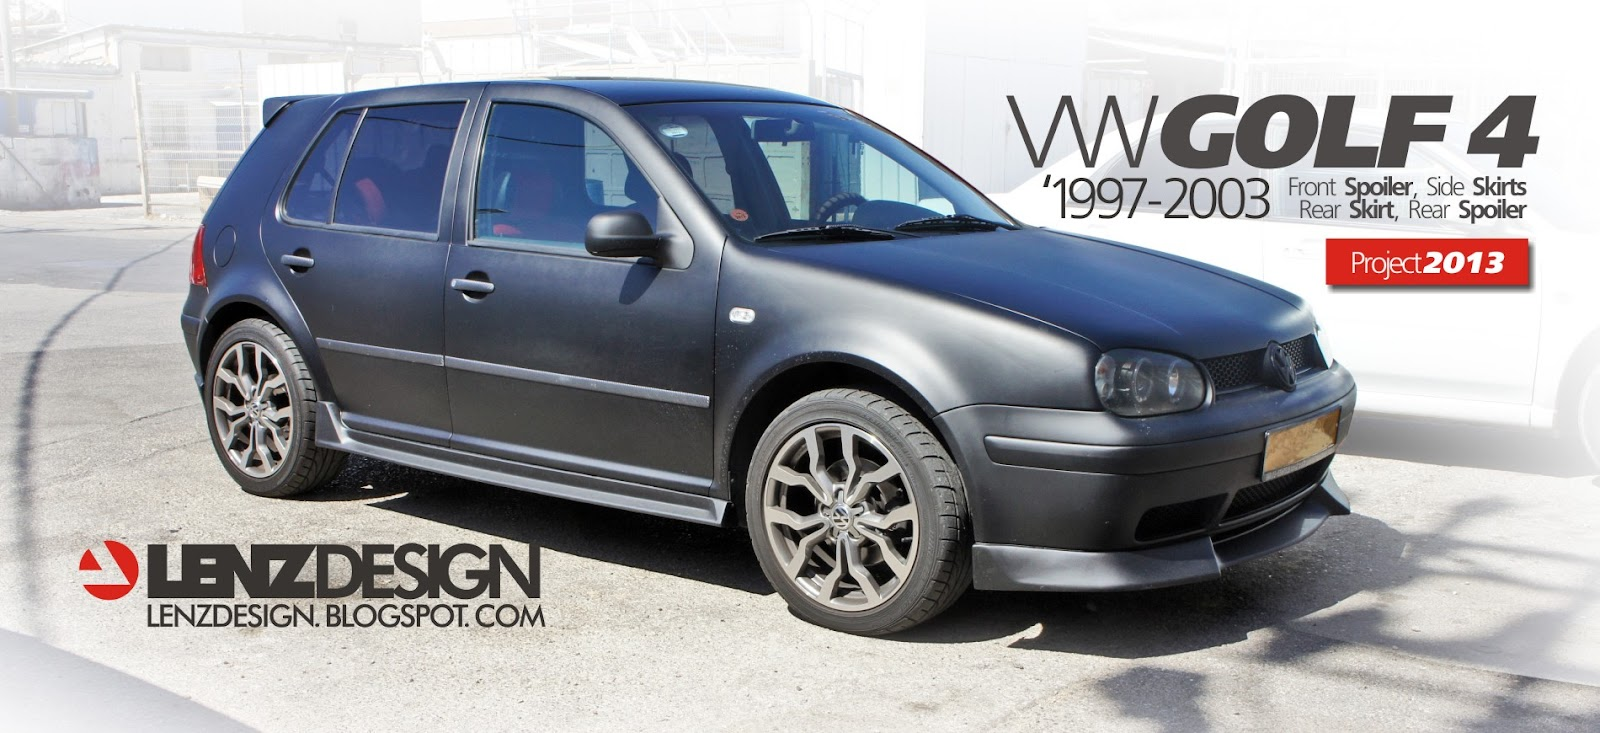 Car Vinyl Wrap For Sale >> VW Golf 4 Tuning Lenzdesign. שיפורים חיצוניים לרכב - Auto ...